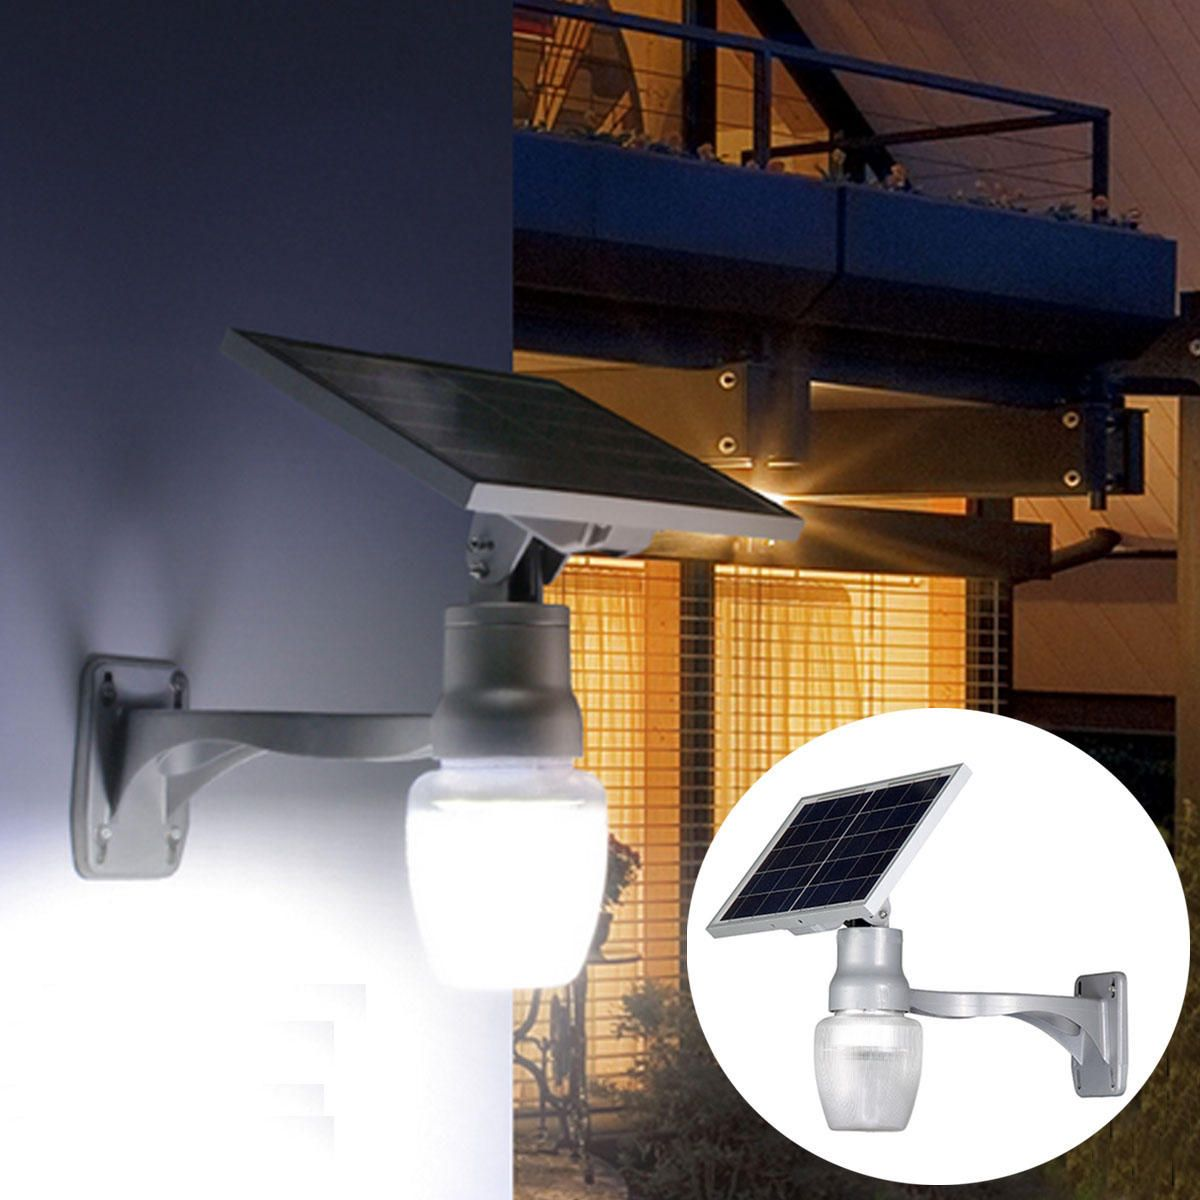 PIR Motion Sensor 44 Leds SMD Outdoor Garden Wall Shed Security Bright Light New